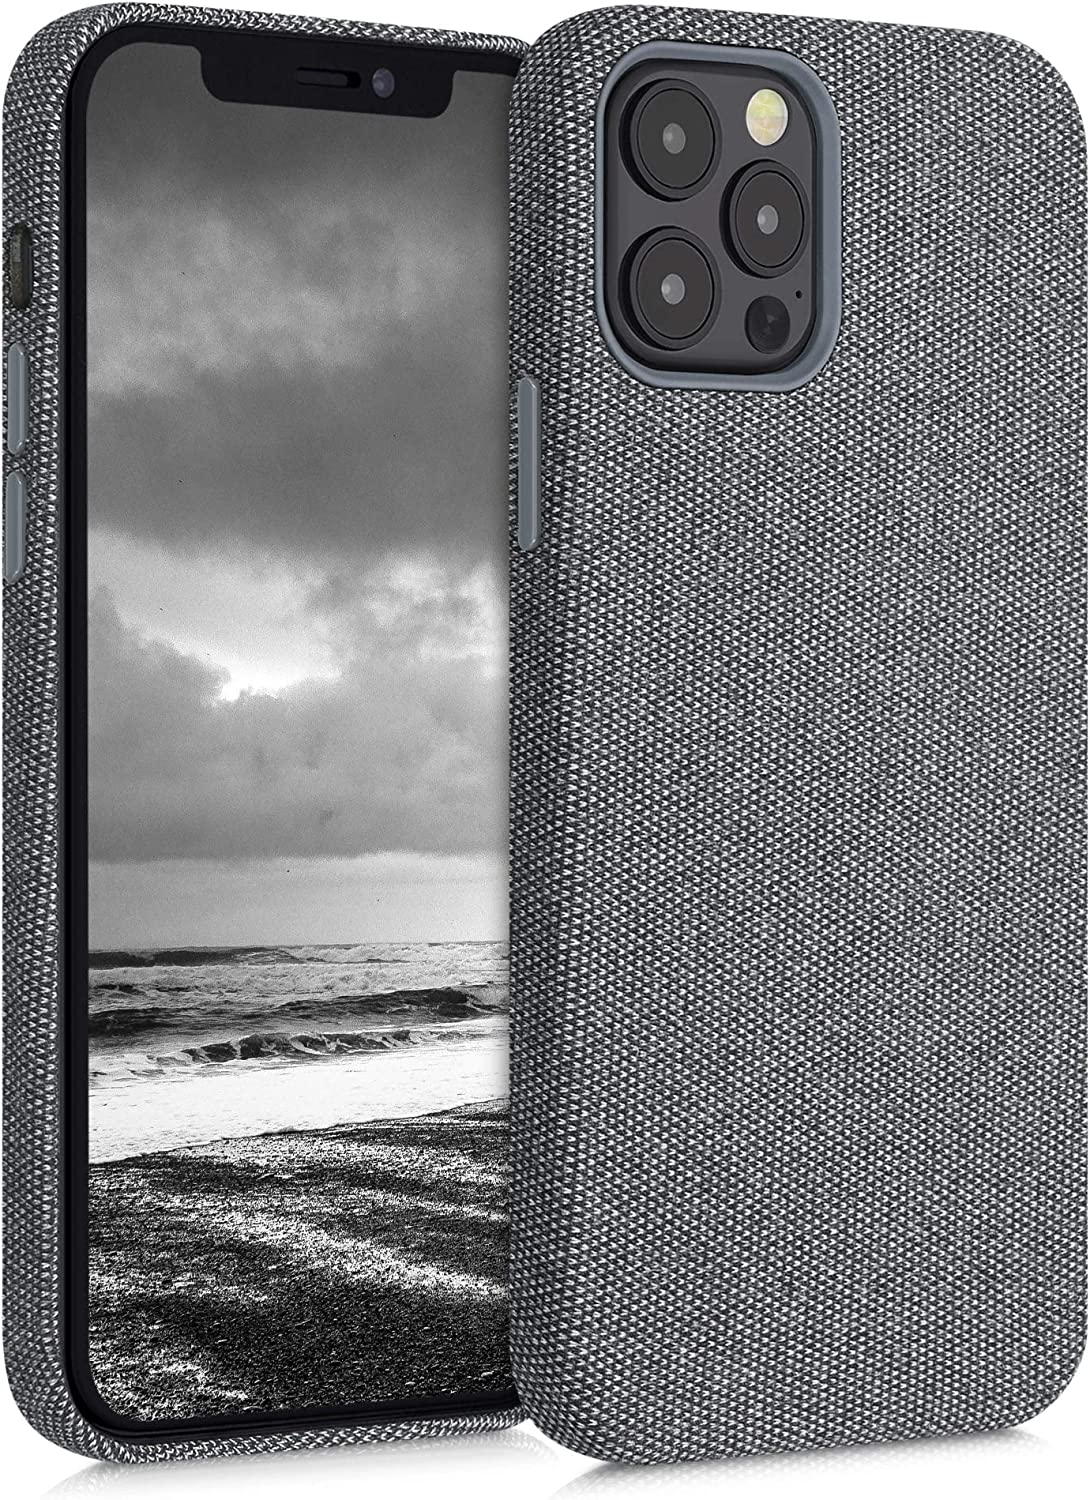 kwmobile TPU Case Compatible with Apple iPhone 12/12 Pro - TPU and Fabric Smartphone Cell Phone Cover in Canvas